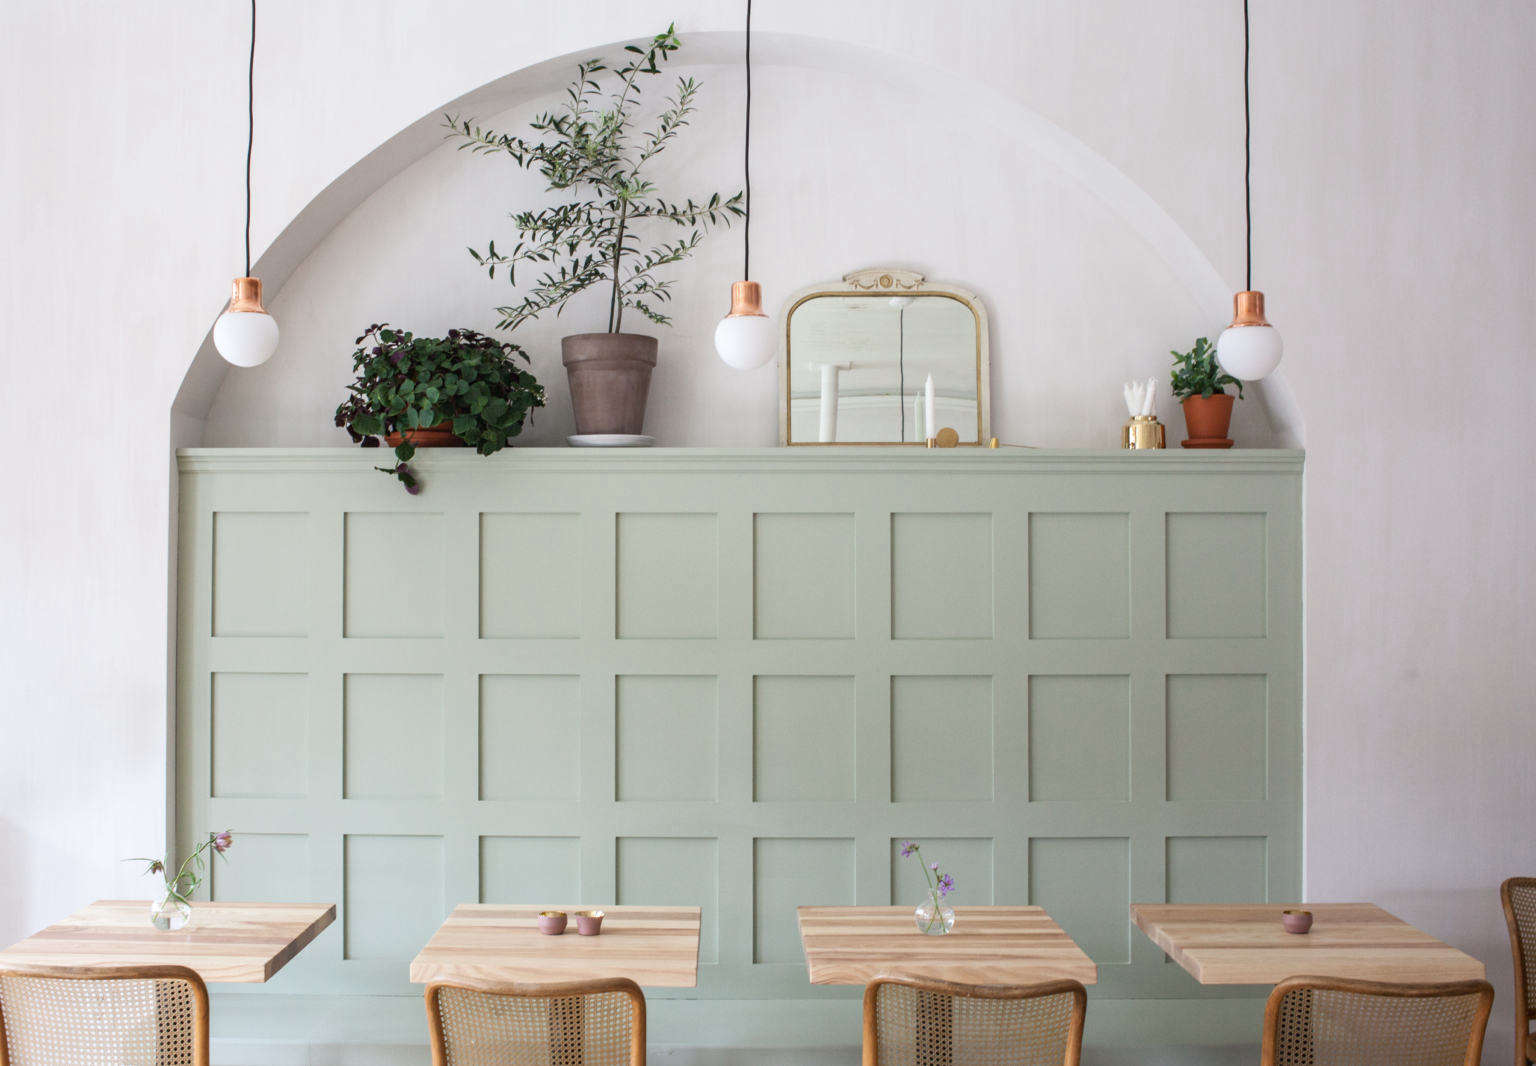 detour dear grain cafe green painted banquette in archway juli daoust mjolk 1536x1066